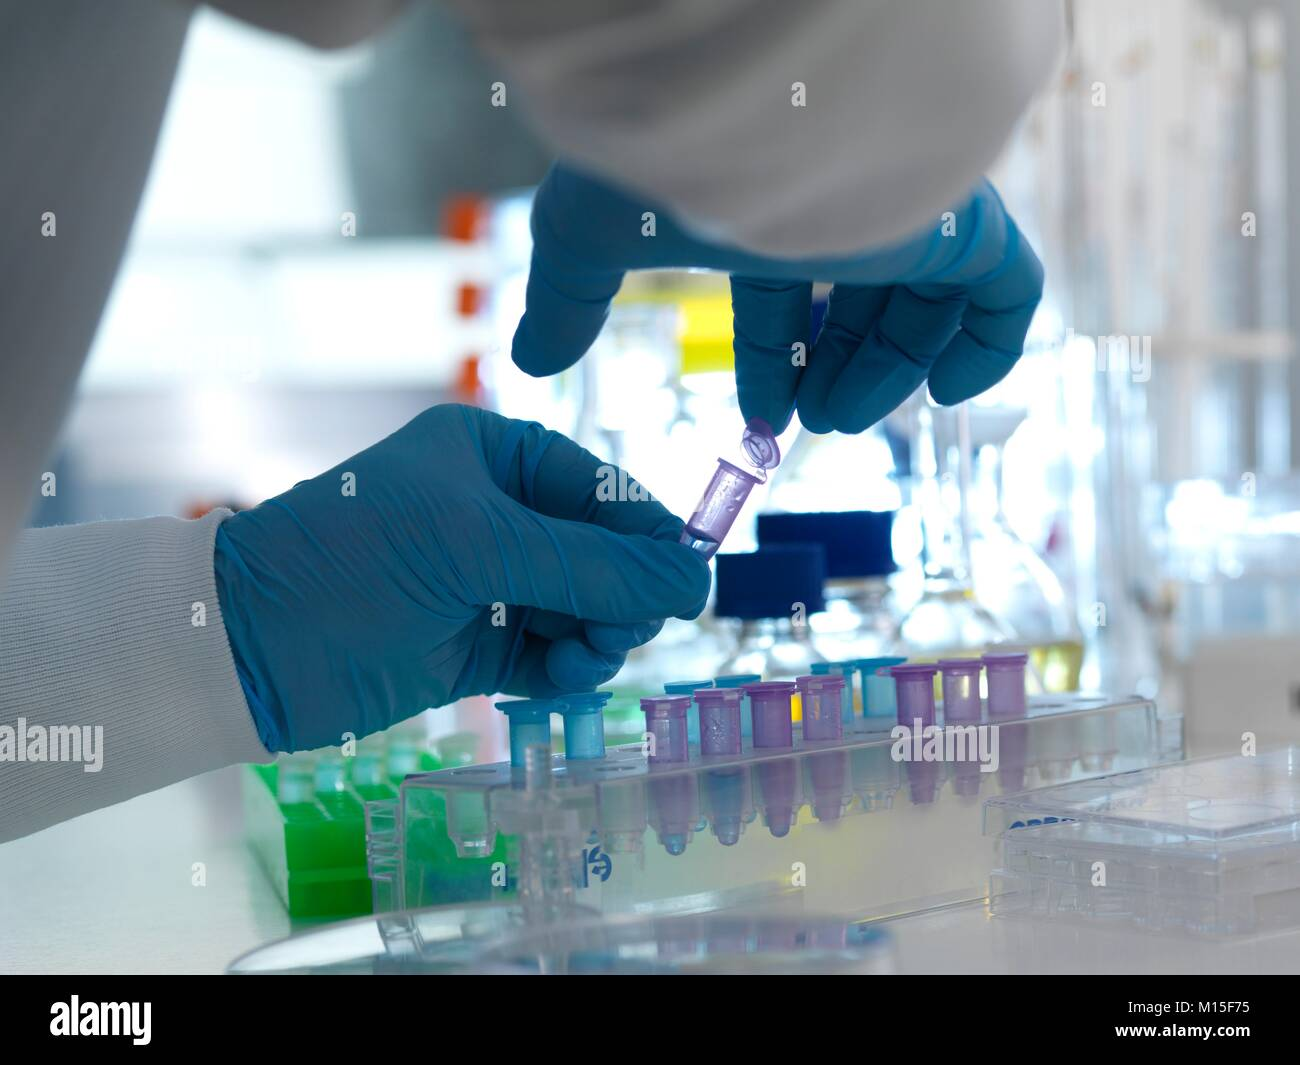 MODEL RELEASED. Biomedical research. Scientist closing the lid of a vial ready for testing in a laboratory. - Stock Image